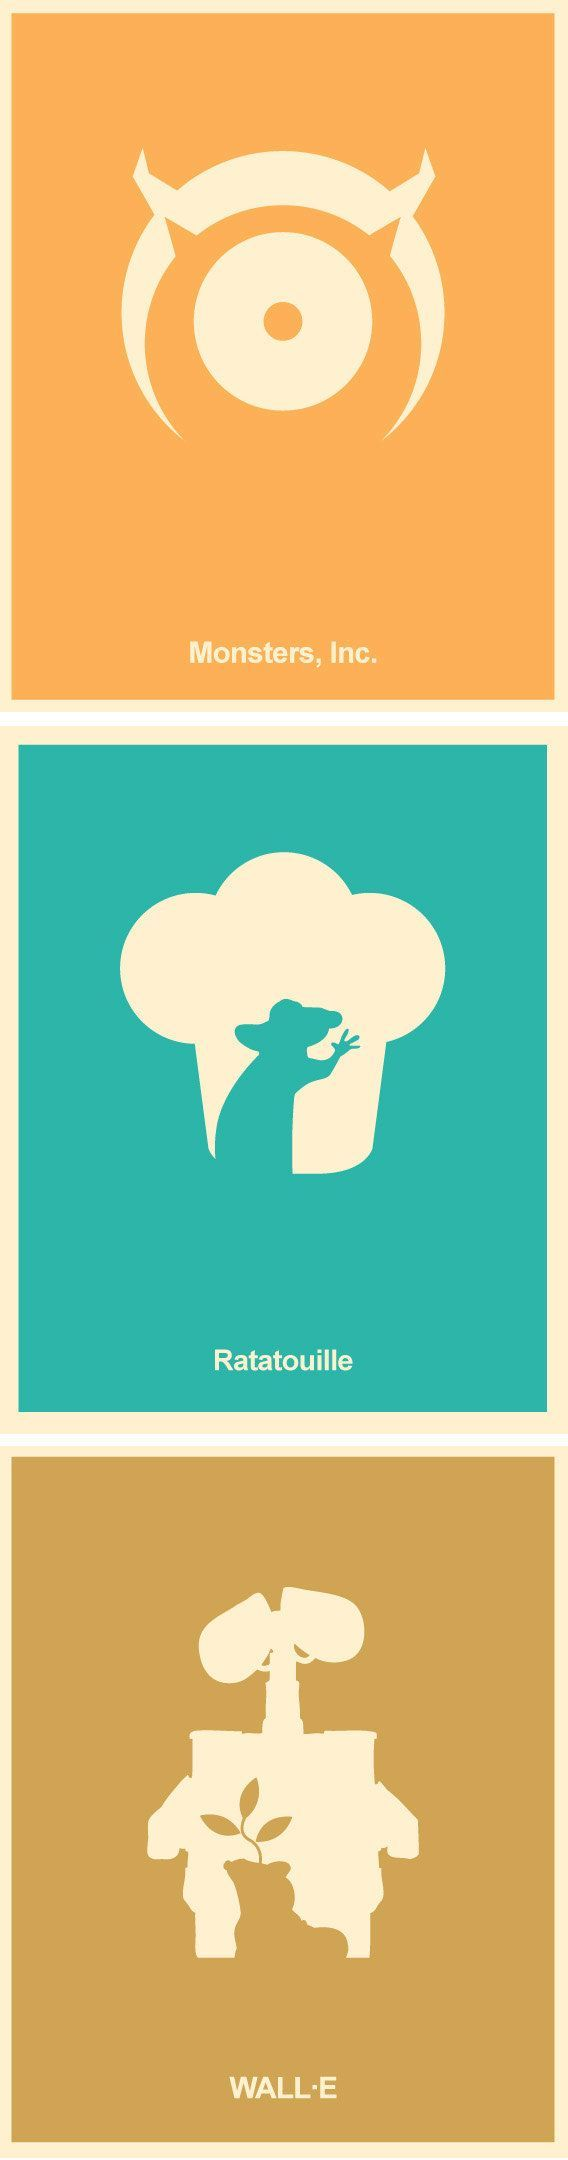 """Pixar Minimalist Poster Set - Monsters Inc, A Bug's Life, Toy Story, The Incredibles, Finding Nemo, Up, Wall-E, Brave and Ratatouille 8""""x10"""":"""